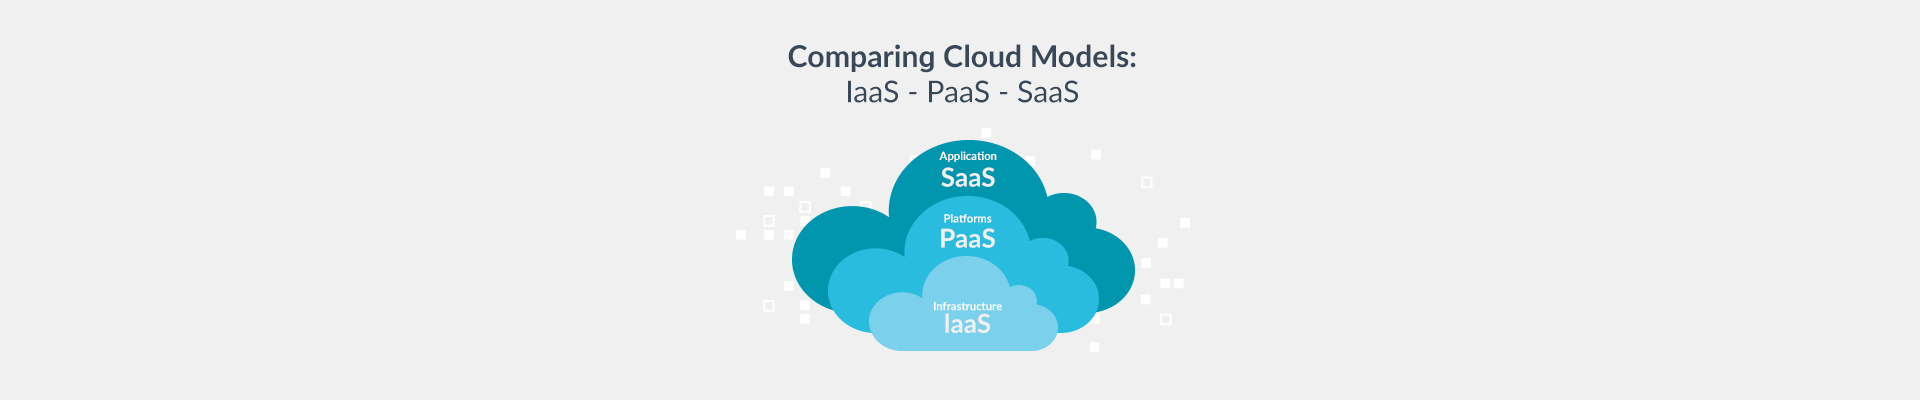 IaaS vs PaaS vs Saas – various cloud service models compared